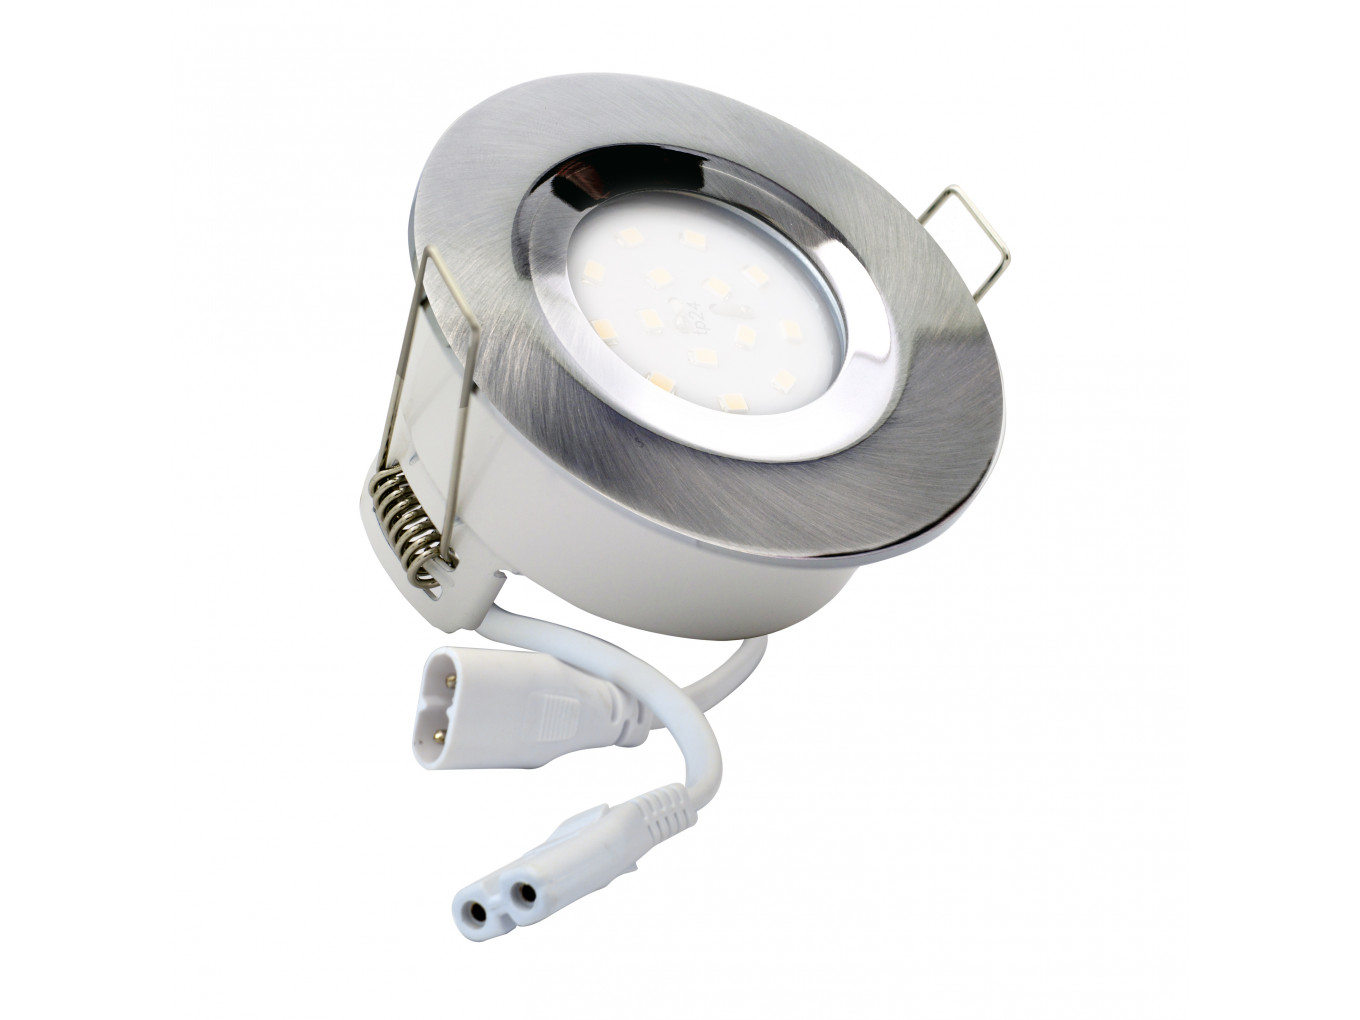 5743 G40 Ip65 Downlight Satin Silver Inc Dimmable Lamp Downlights Wiring Circuit